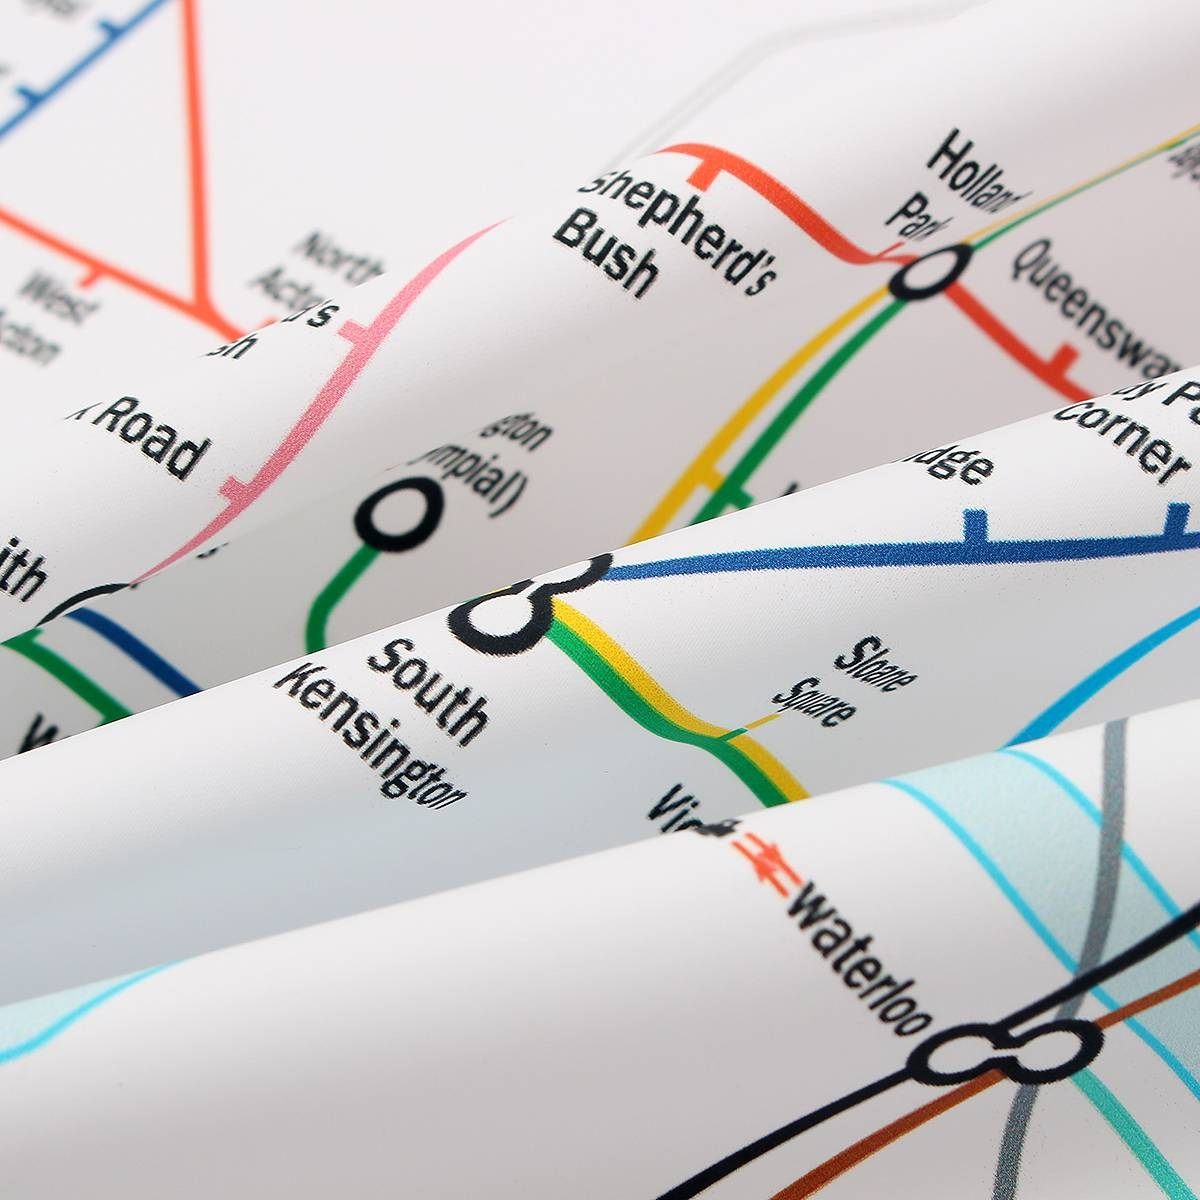 35X23 Inches London Underground Metro Map Retro Wall Art Silk Inside Most Up To Date Metro Map Wall Art (Gallery 9 of 20)